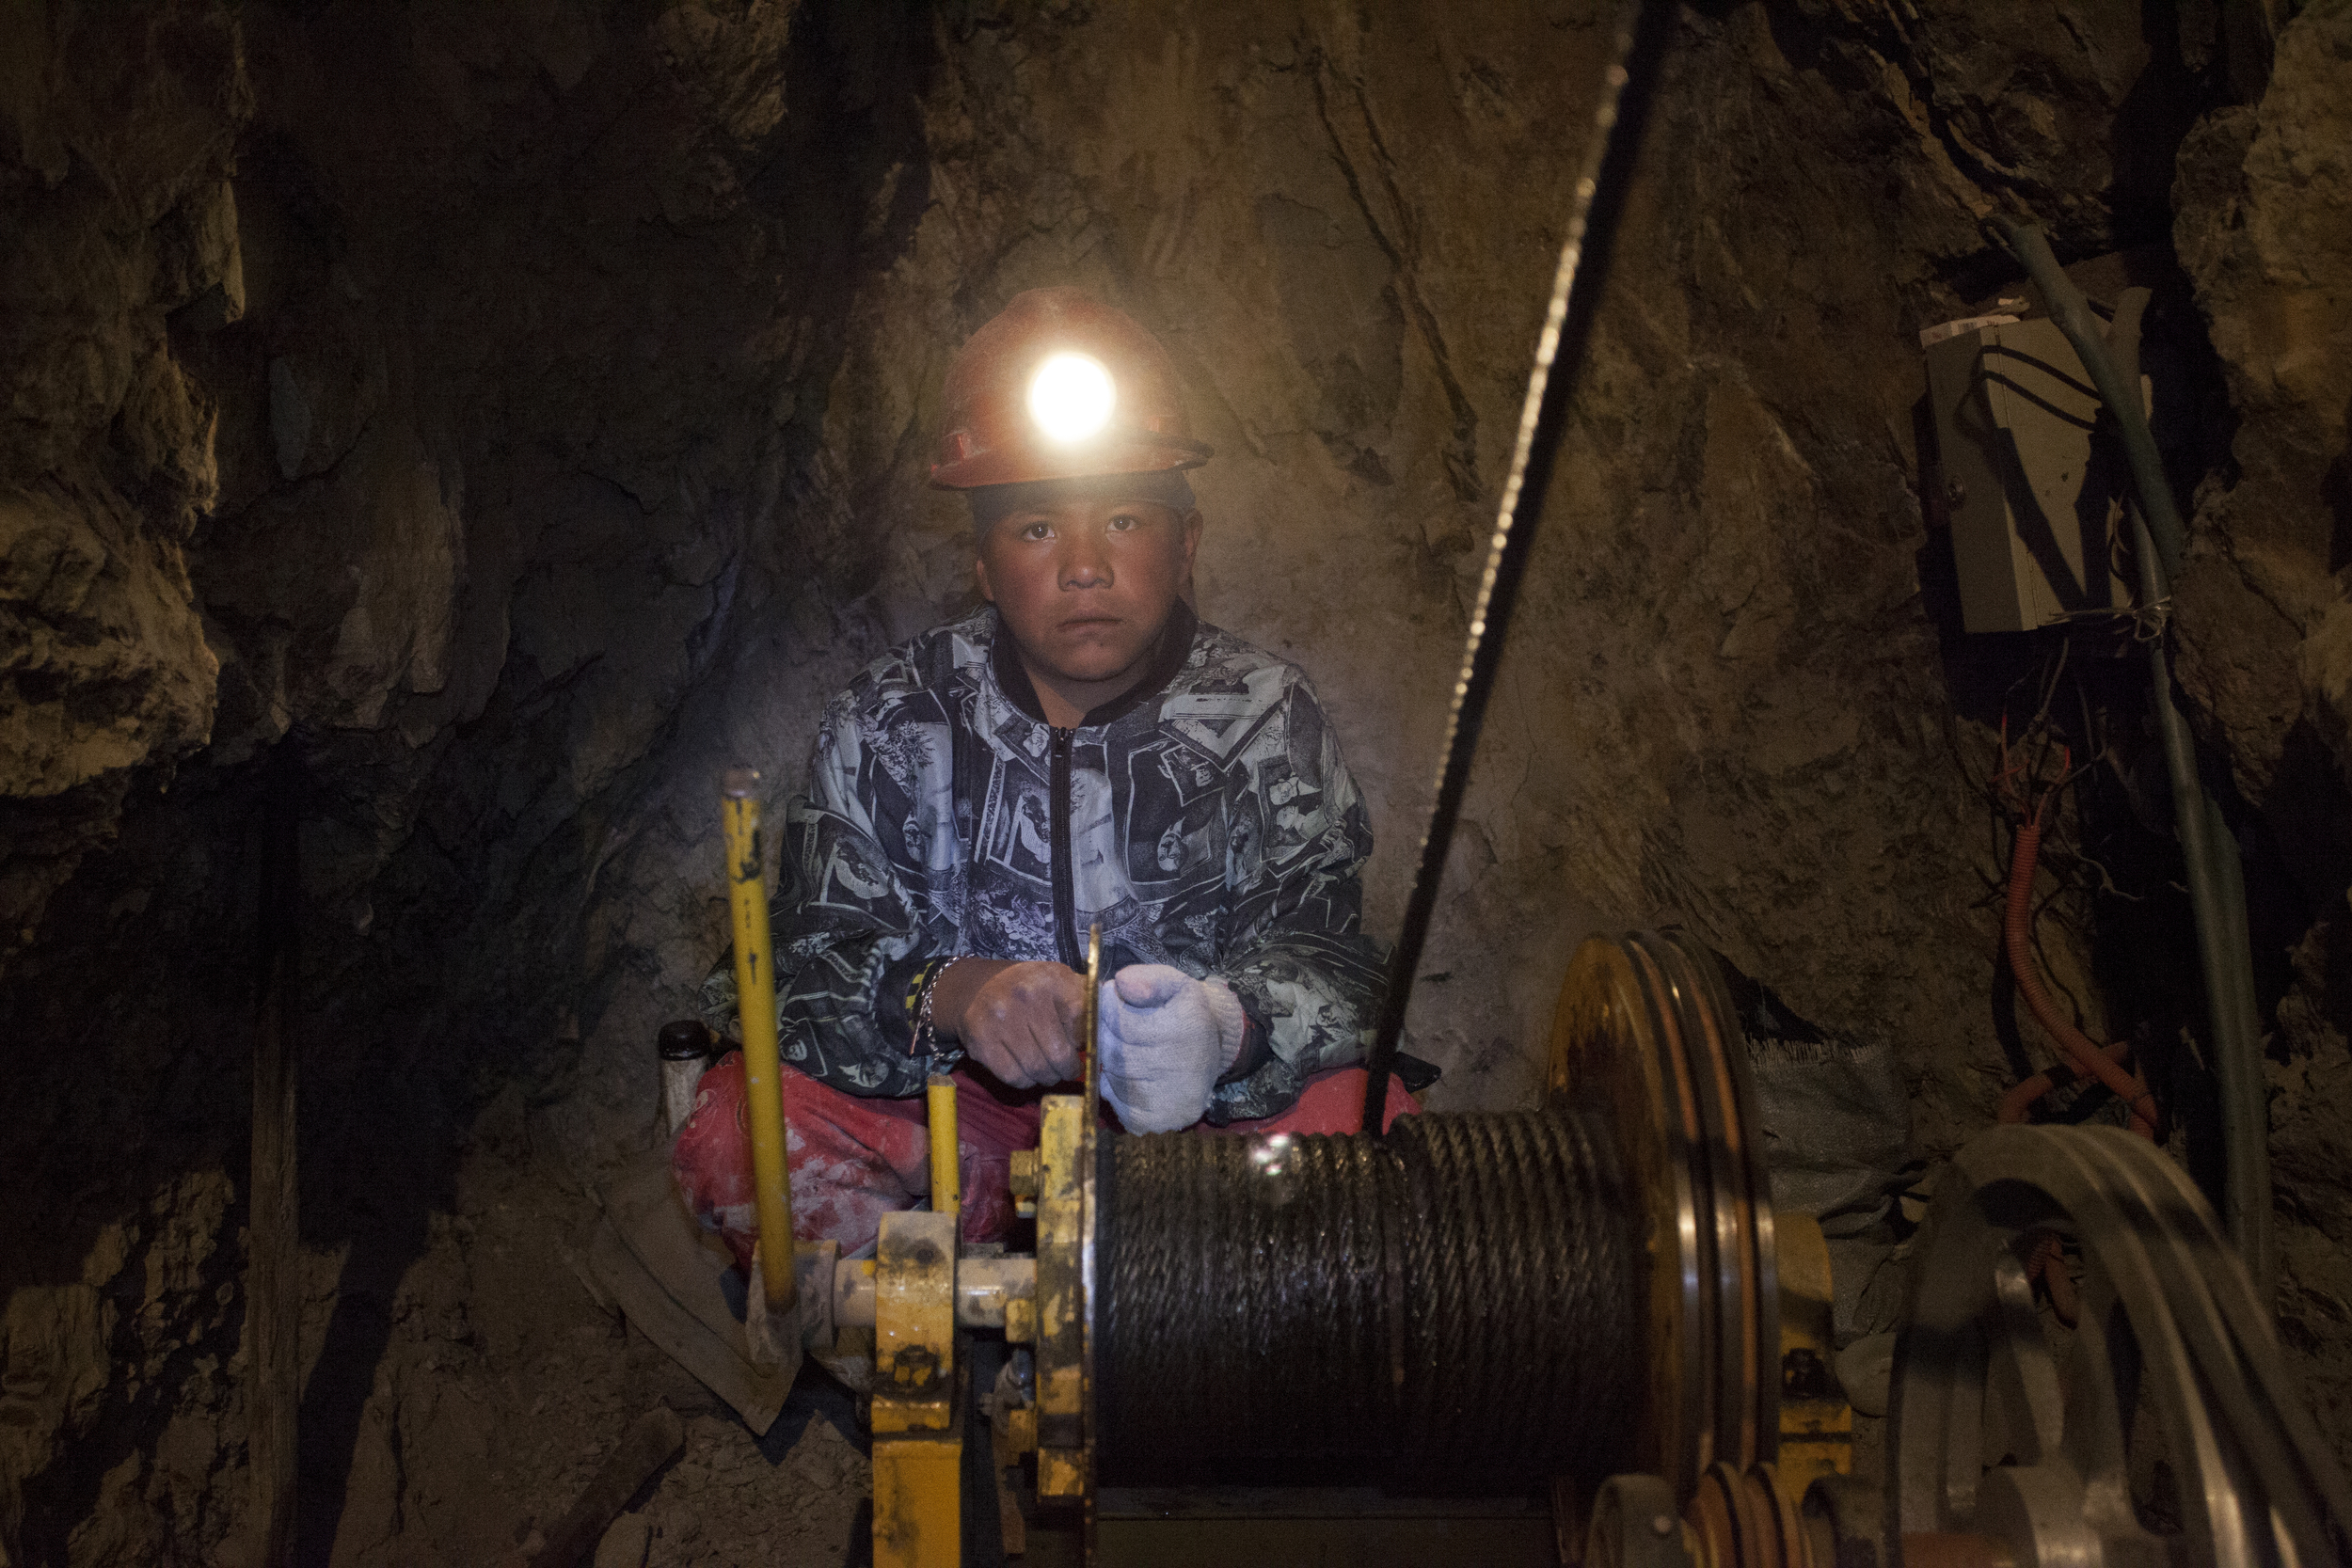 A young boy on his first day working in the mine.